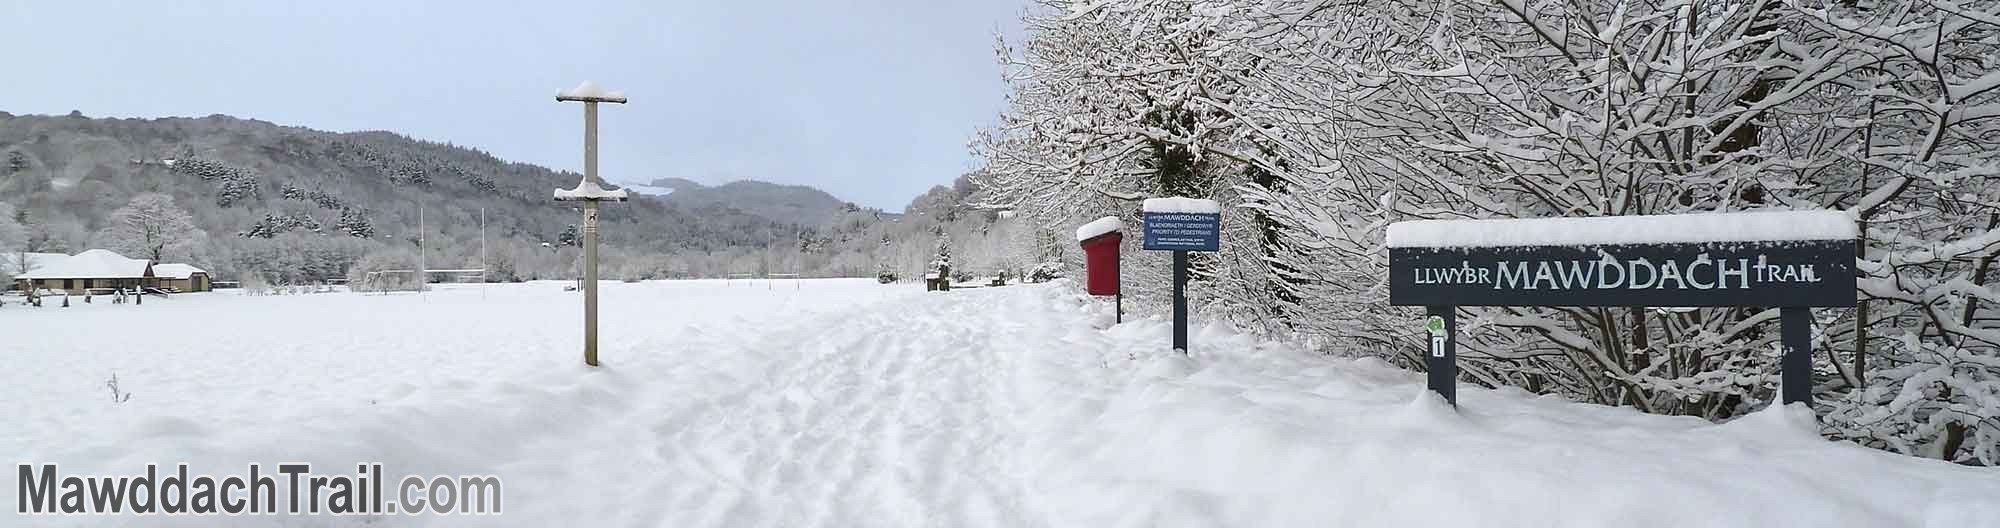 The Mawddach Trail at Dolgellau in the Snow